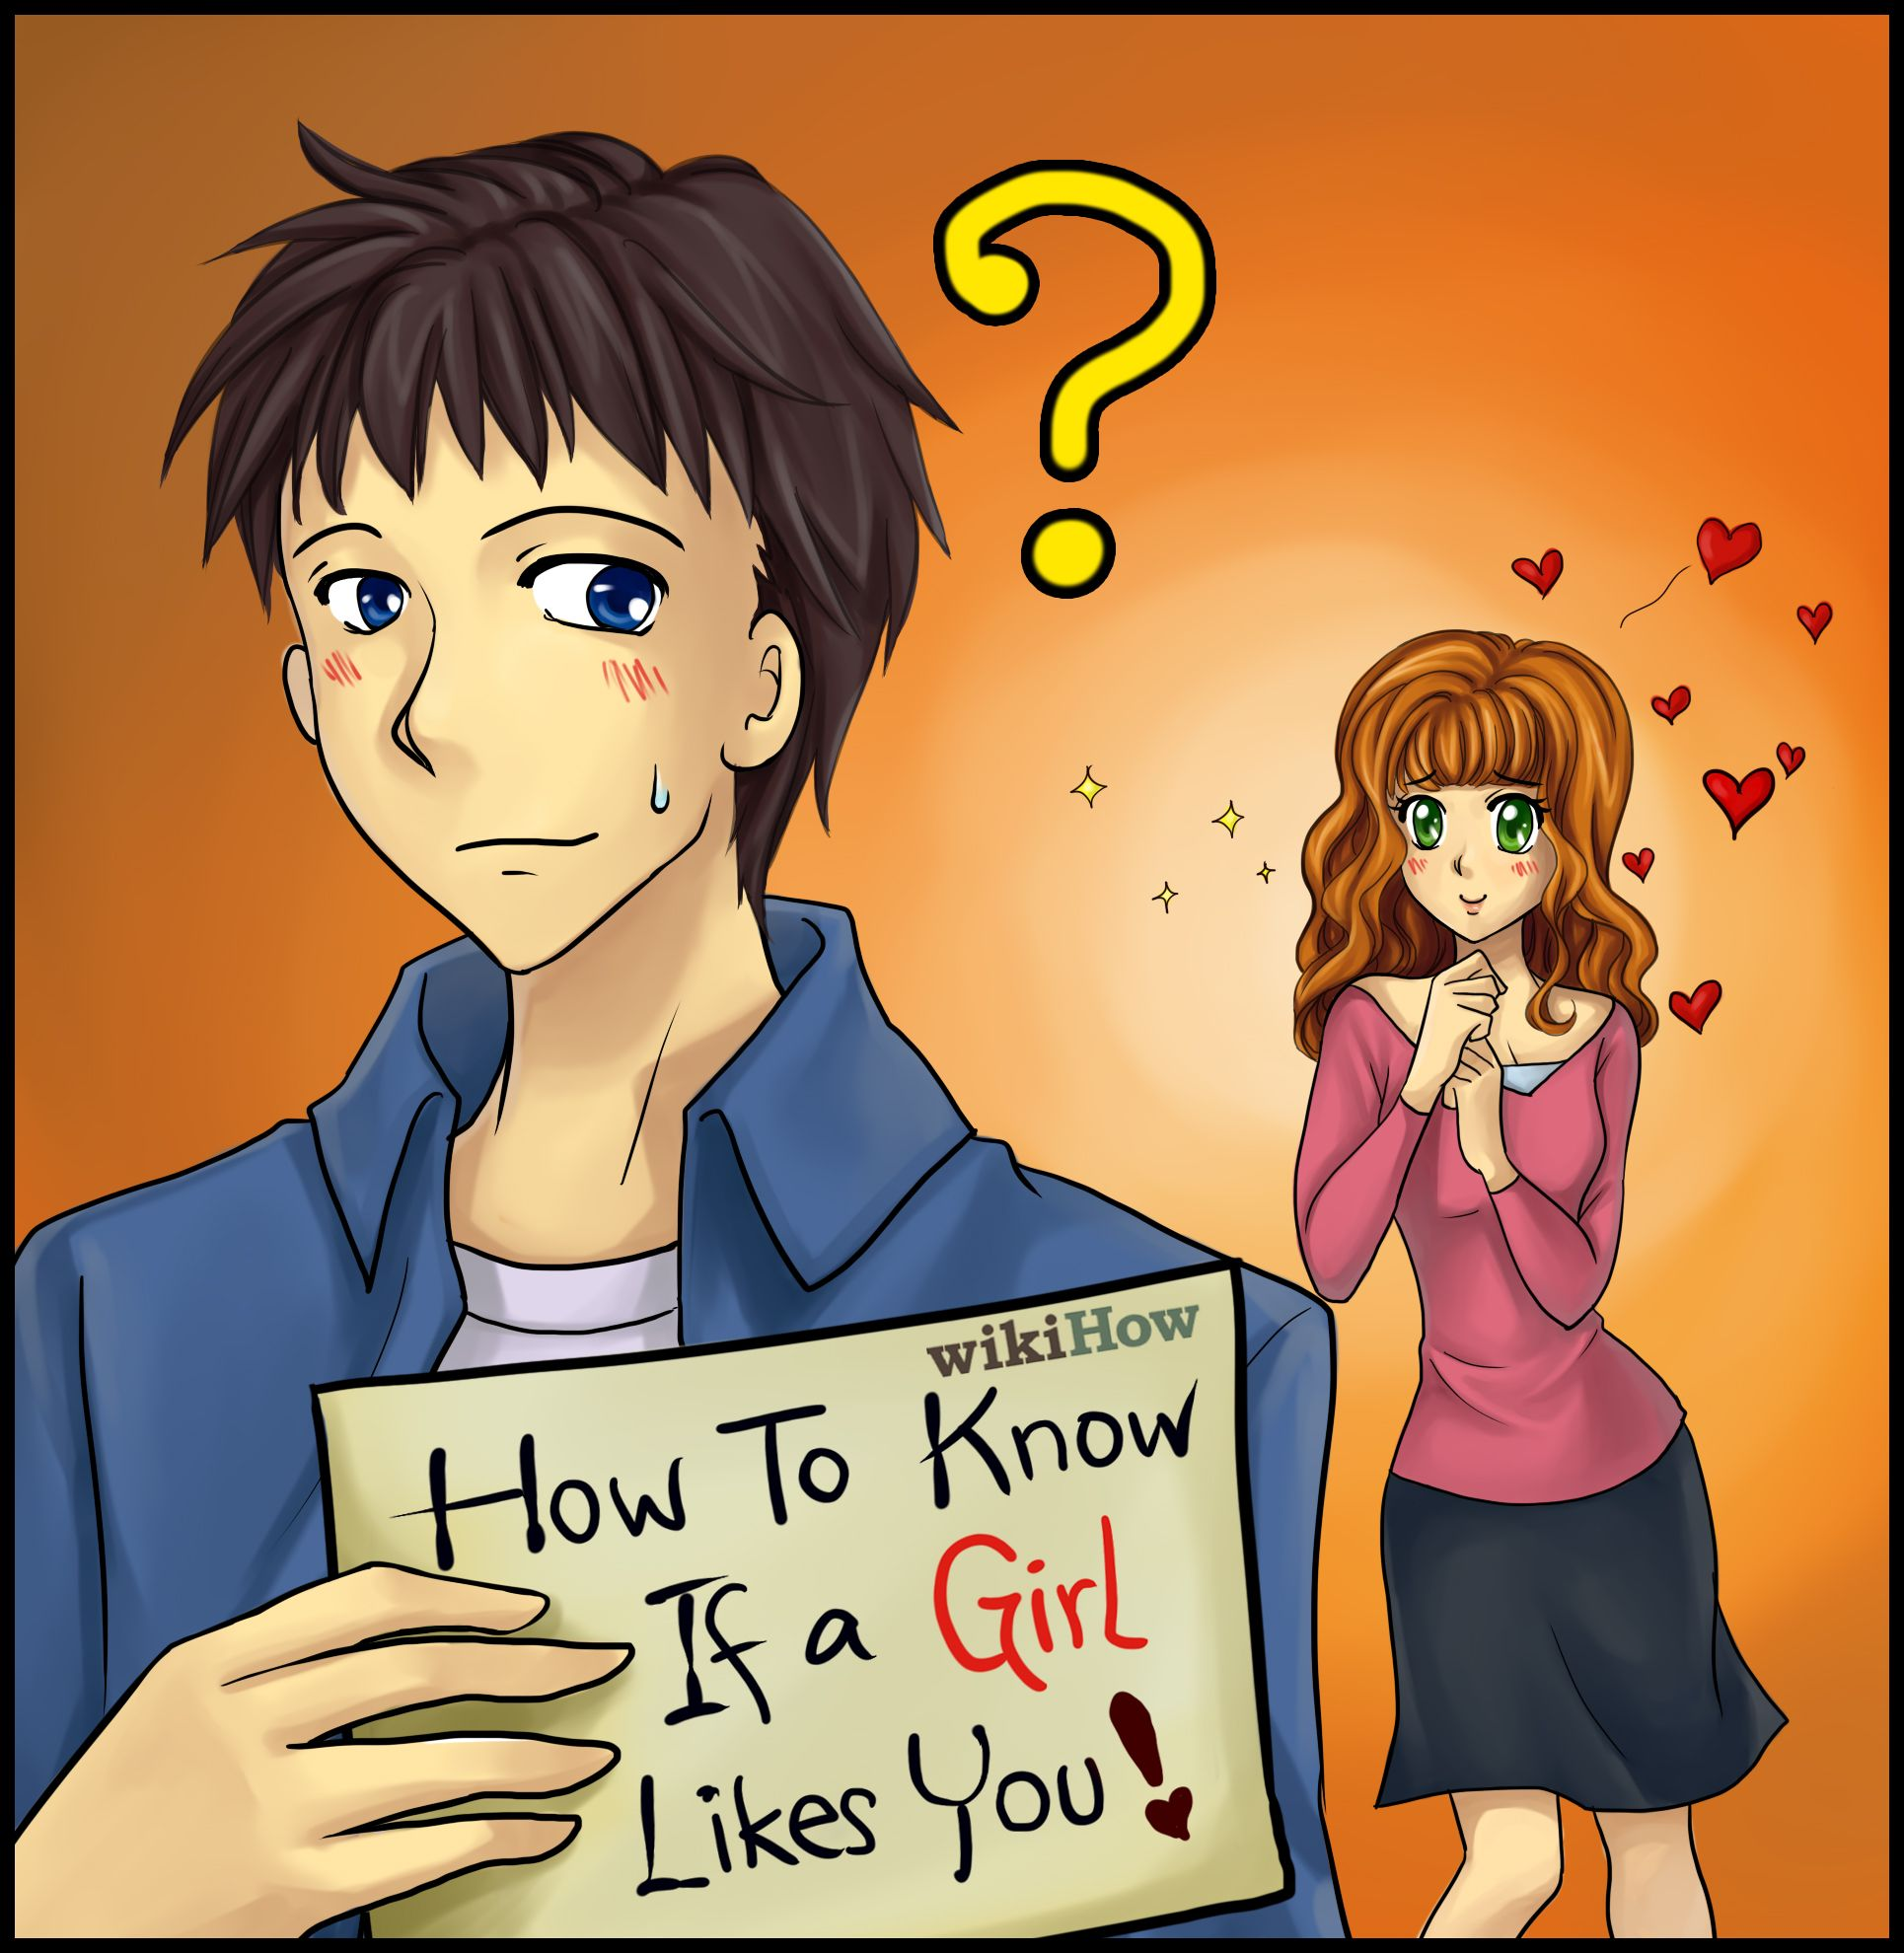 How do you know if a girl likes you